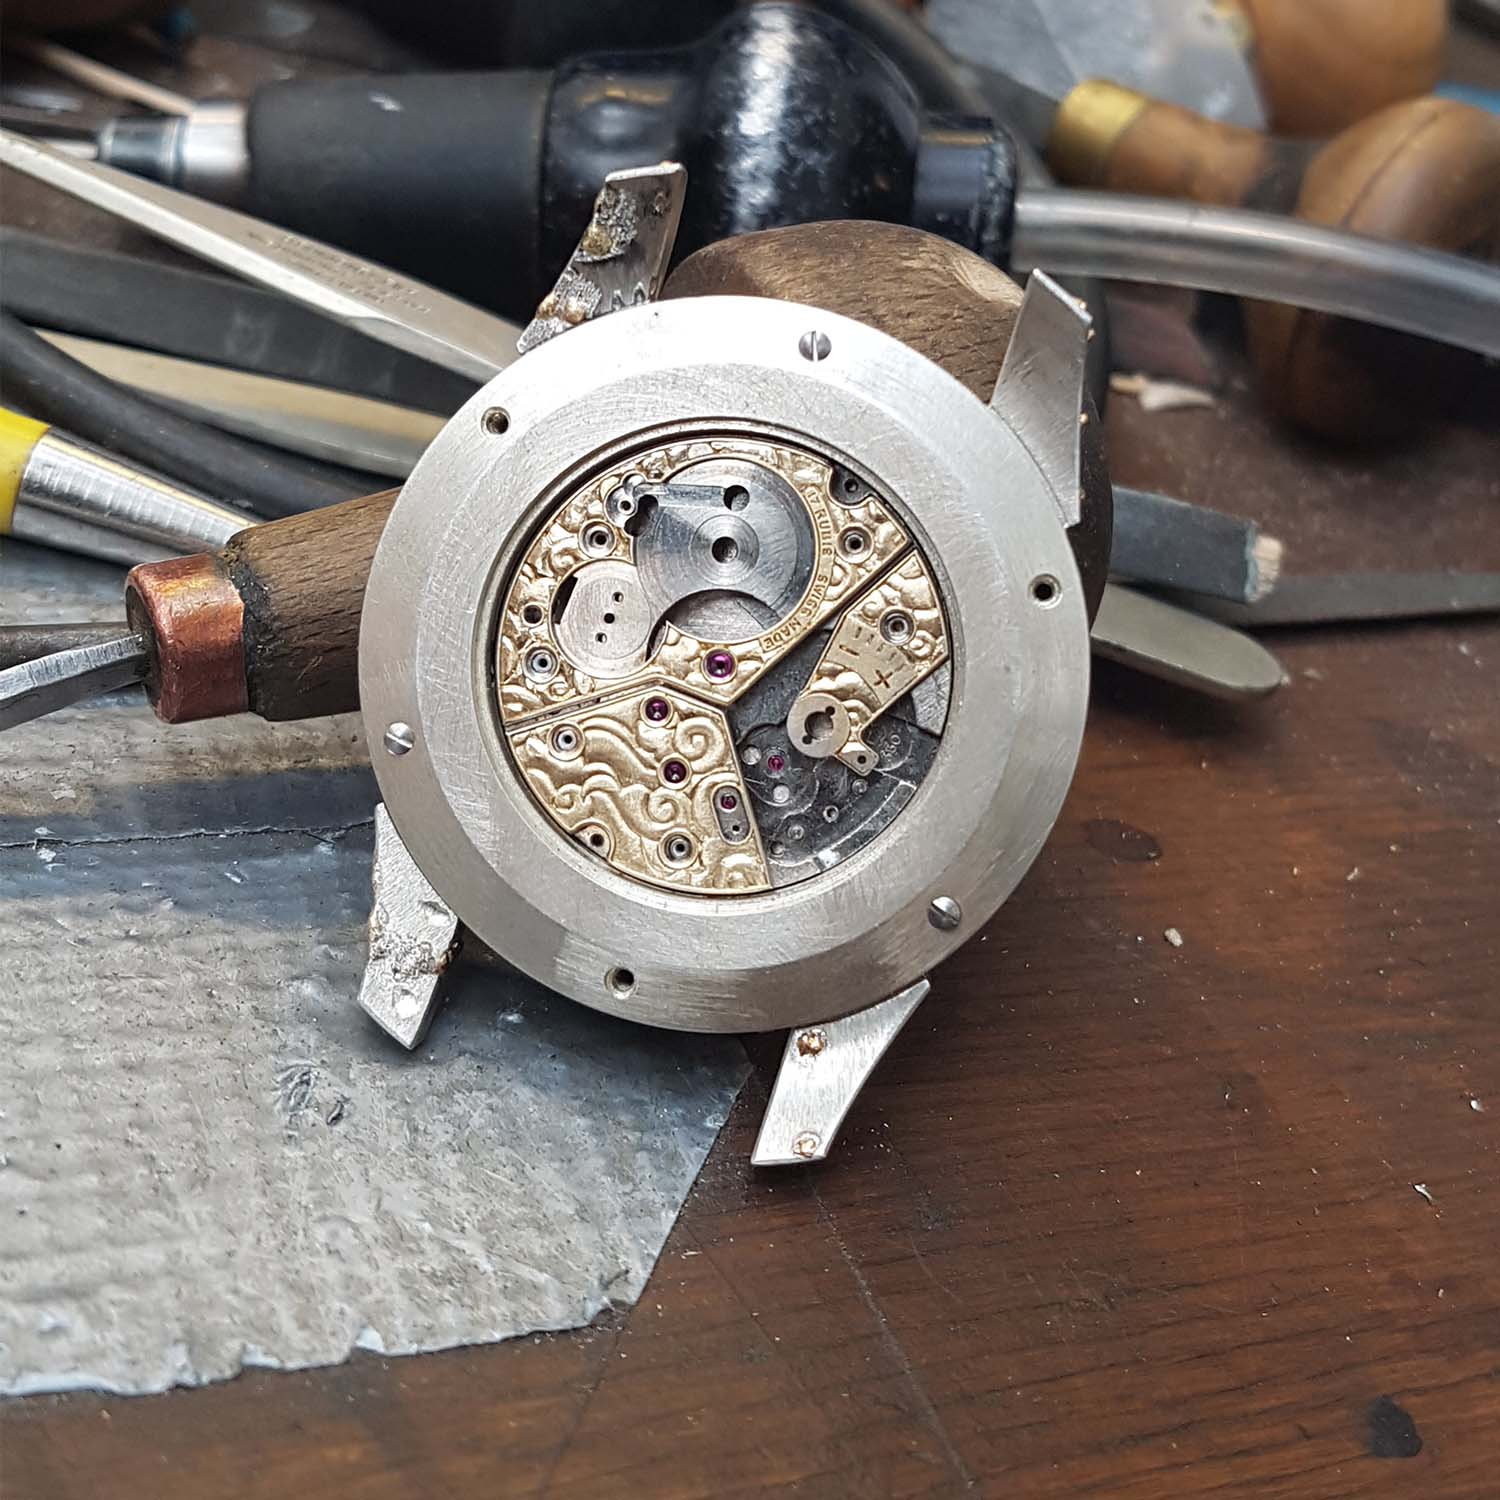 Hand-Engraved Kees Engelbarts Organic Skeleton Ref 1867 - making of - 1